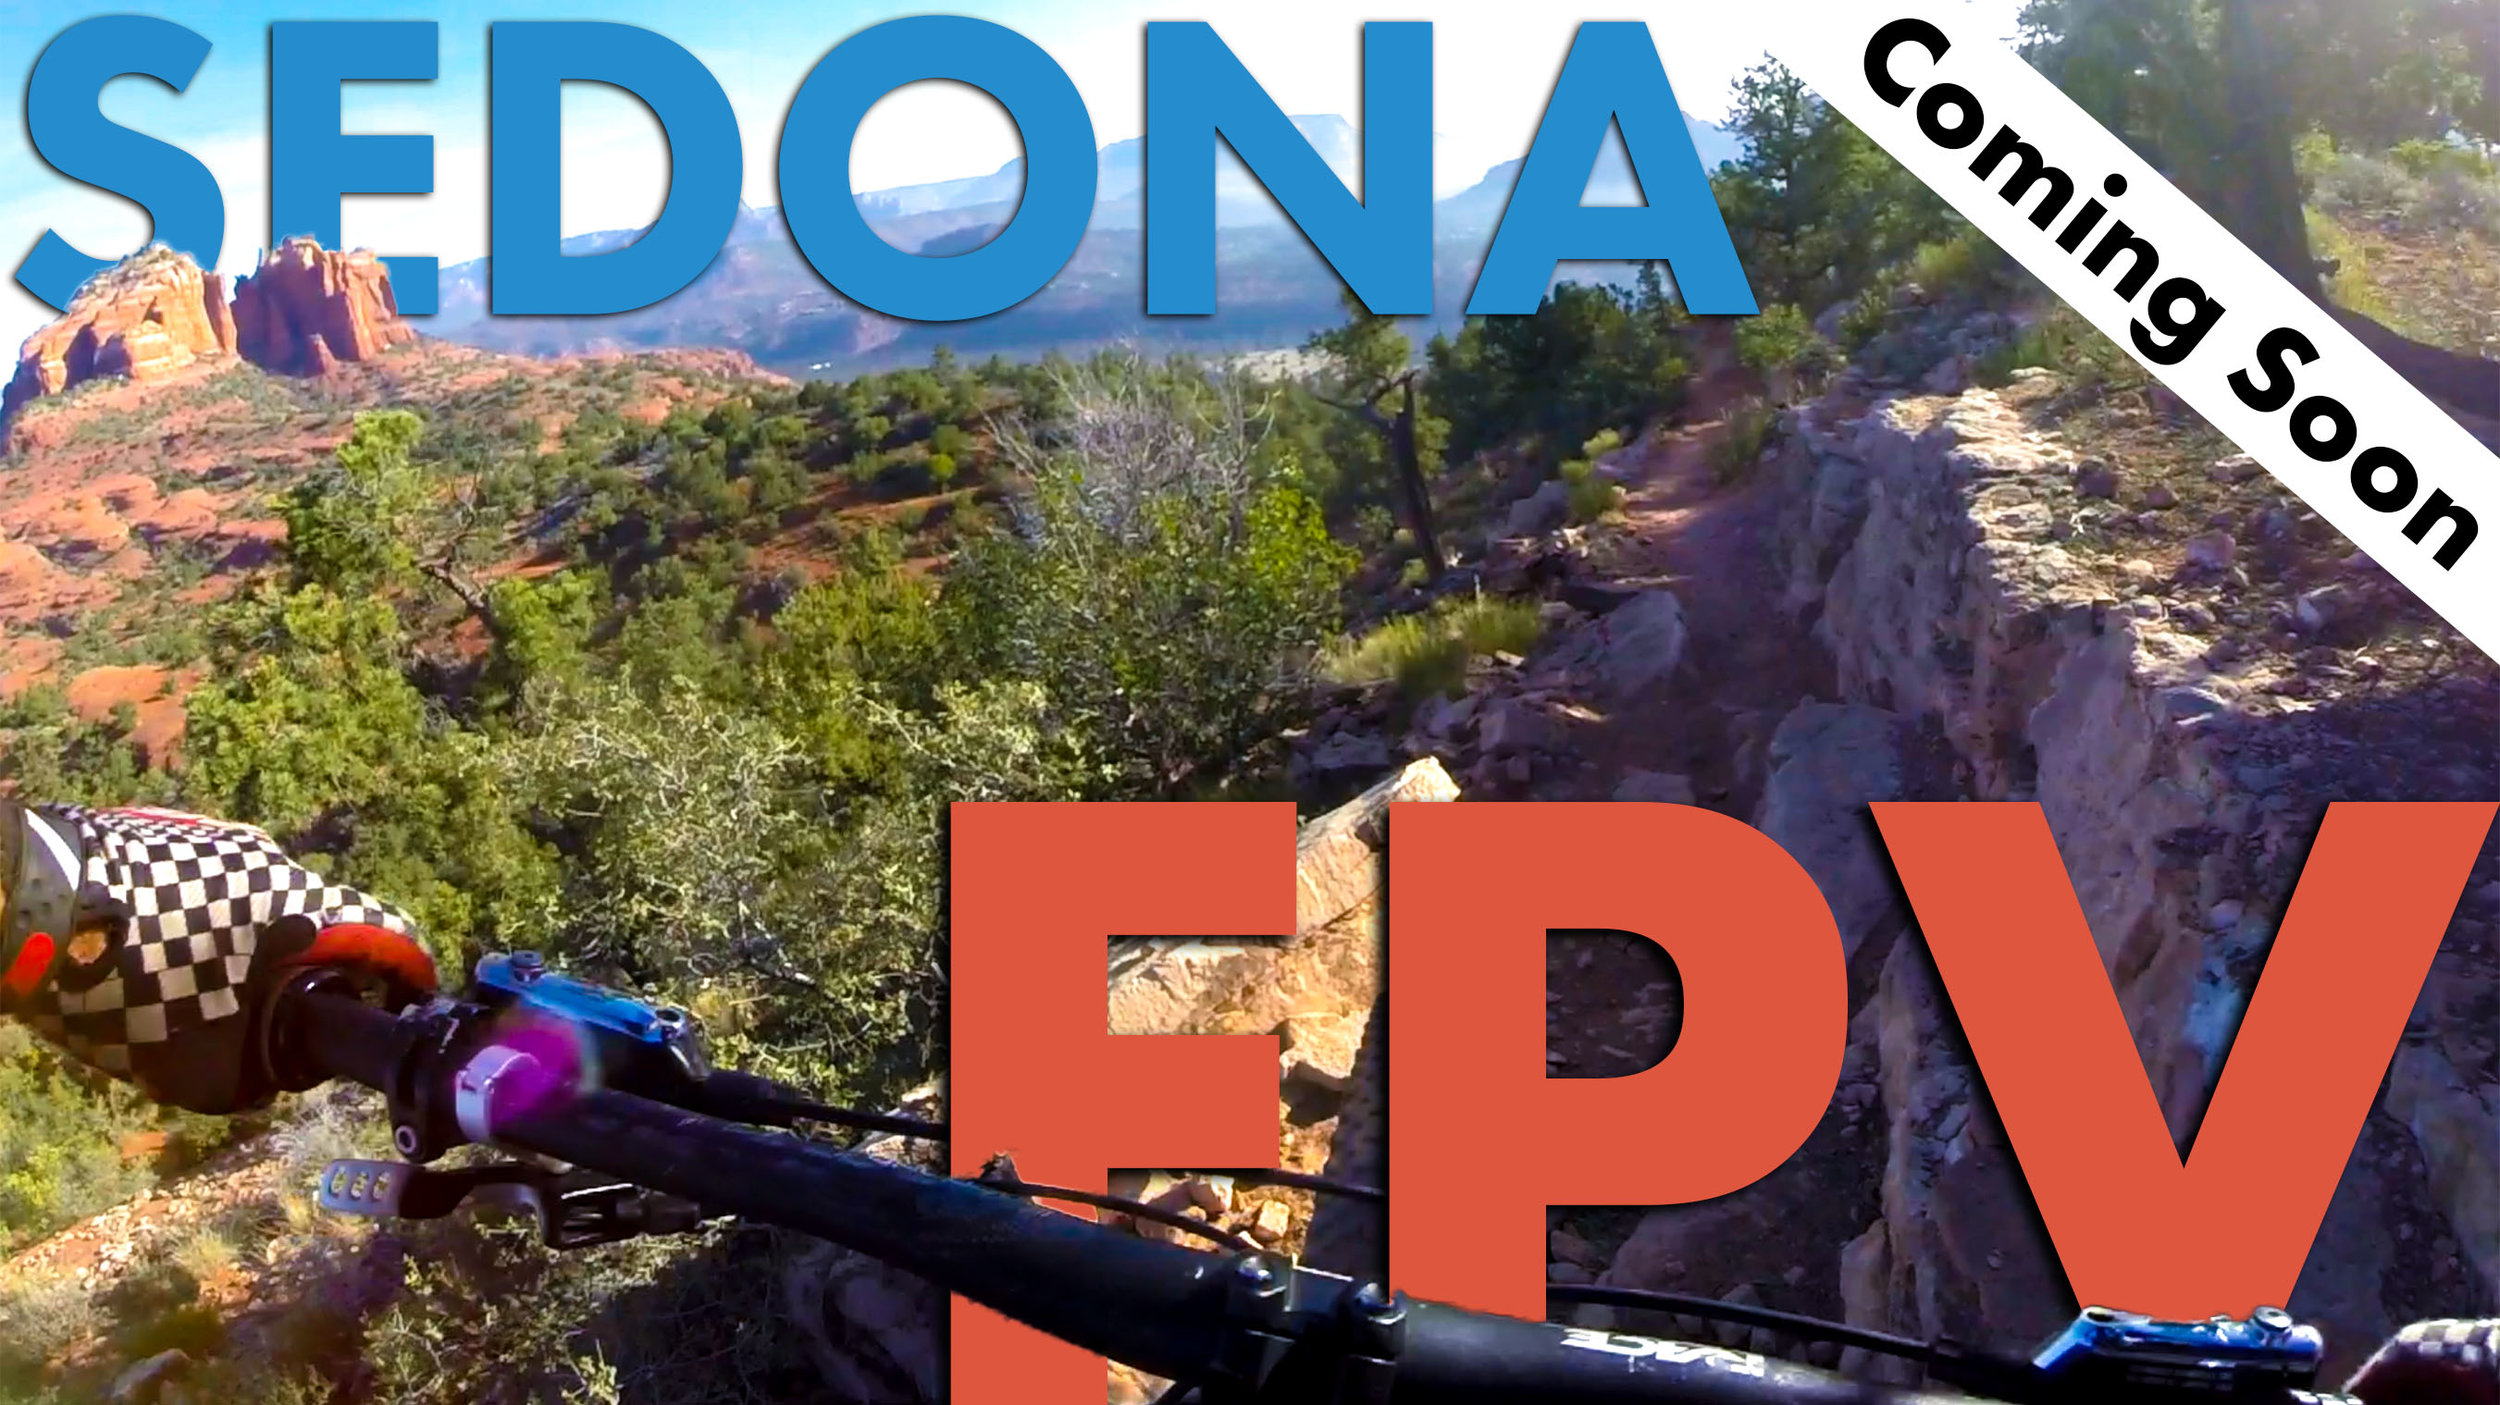 Sedona FPV Thumbnail Authentic COMING SOON.jpg